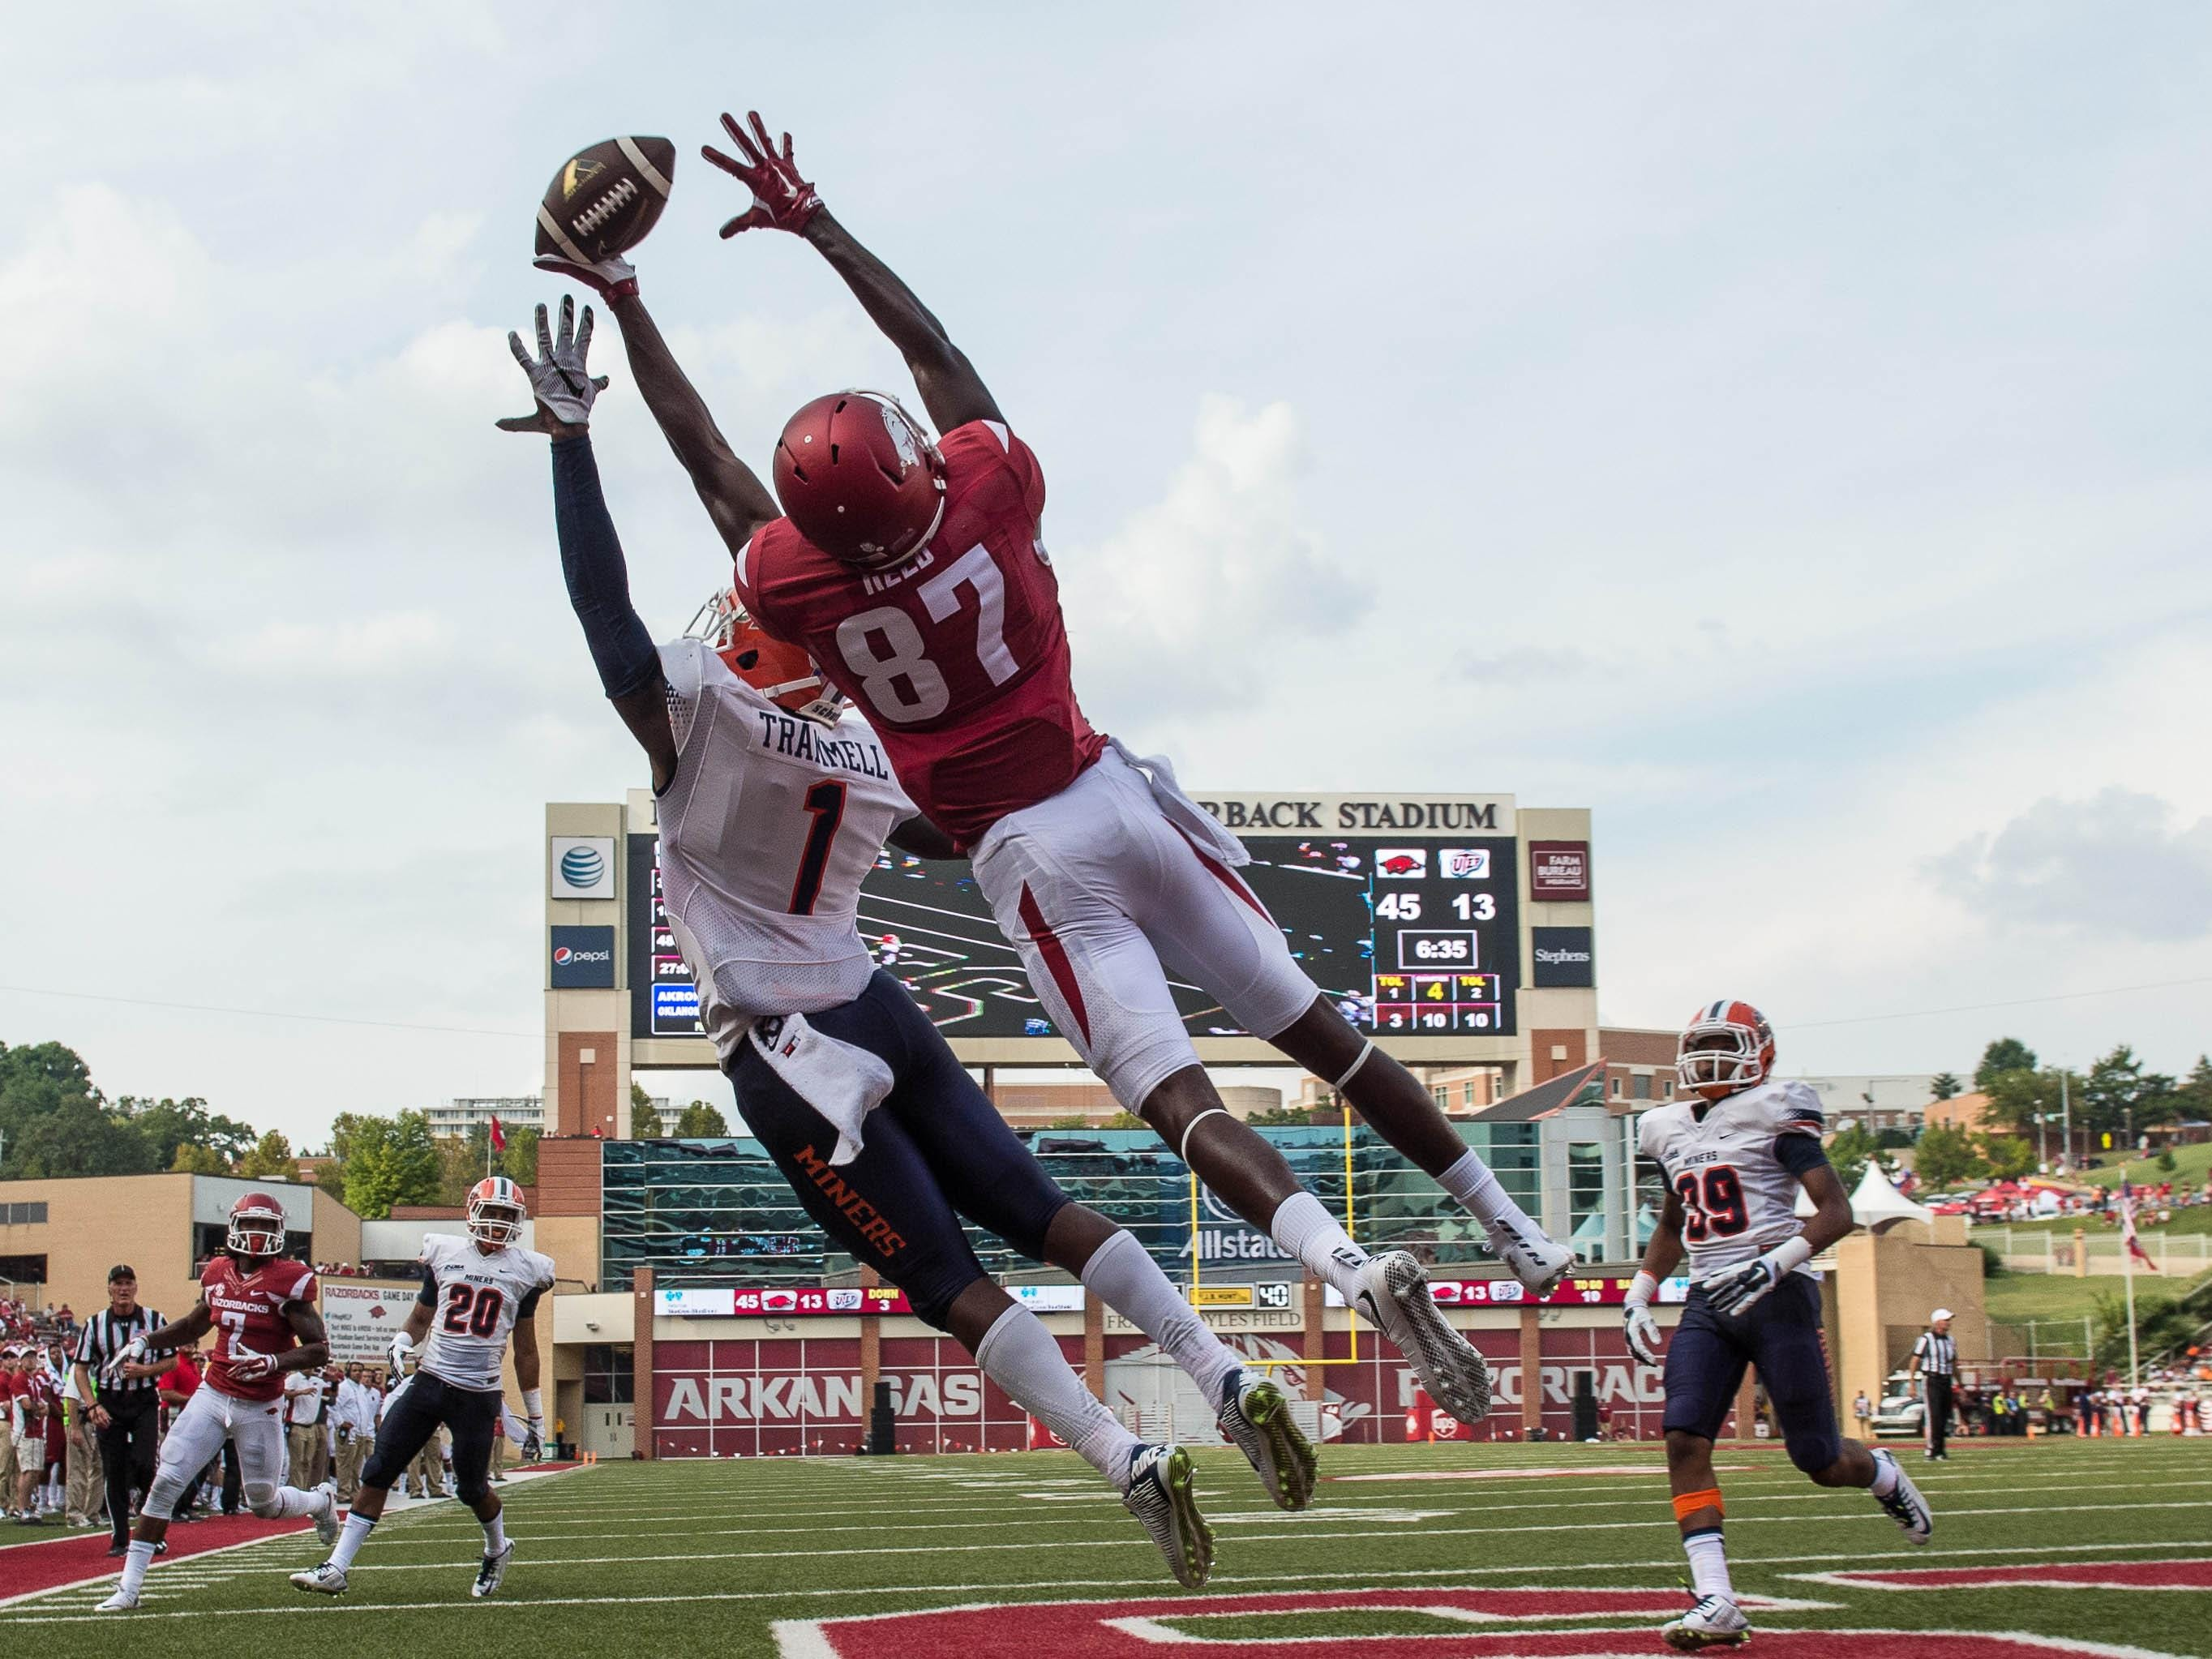 UTEP defensive back Trent Trammel (1) and Arkansas wide receiver Dominique Reed (87) leap for the ball in the end zone in a recent game at Donald W. Reynolds Razorback Stadium.